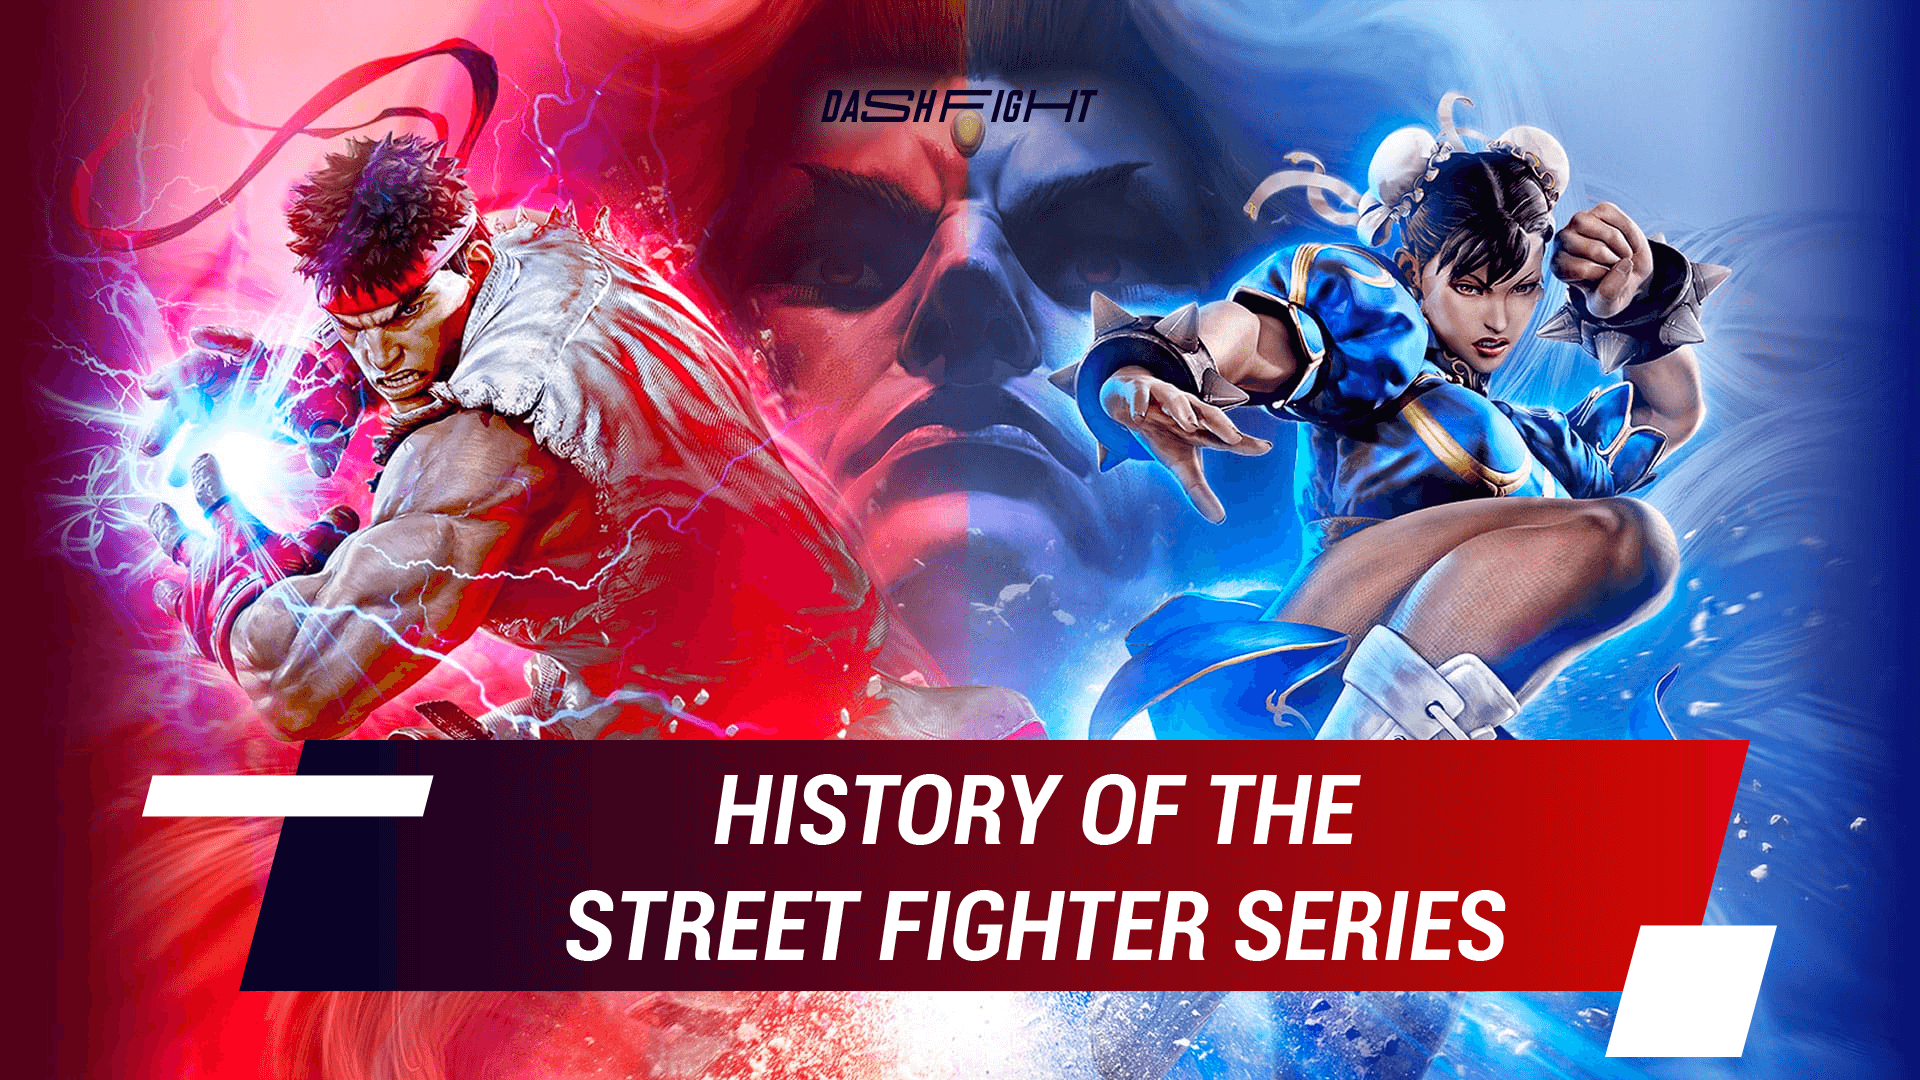 Evolution of Street Fighter: Core Games